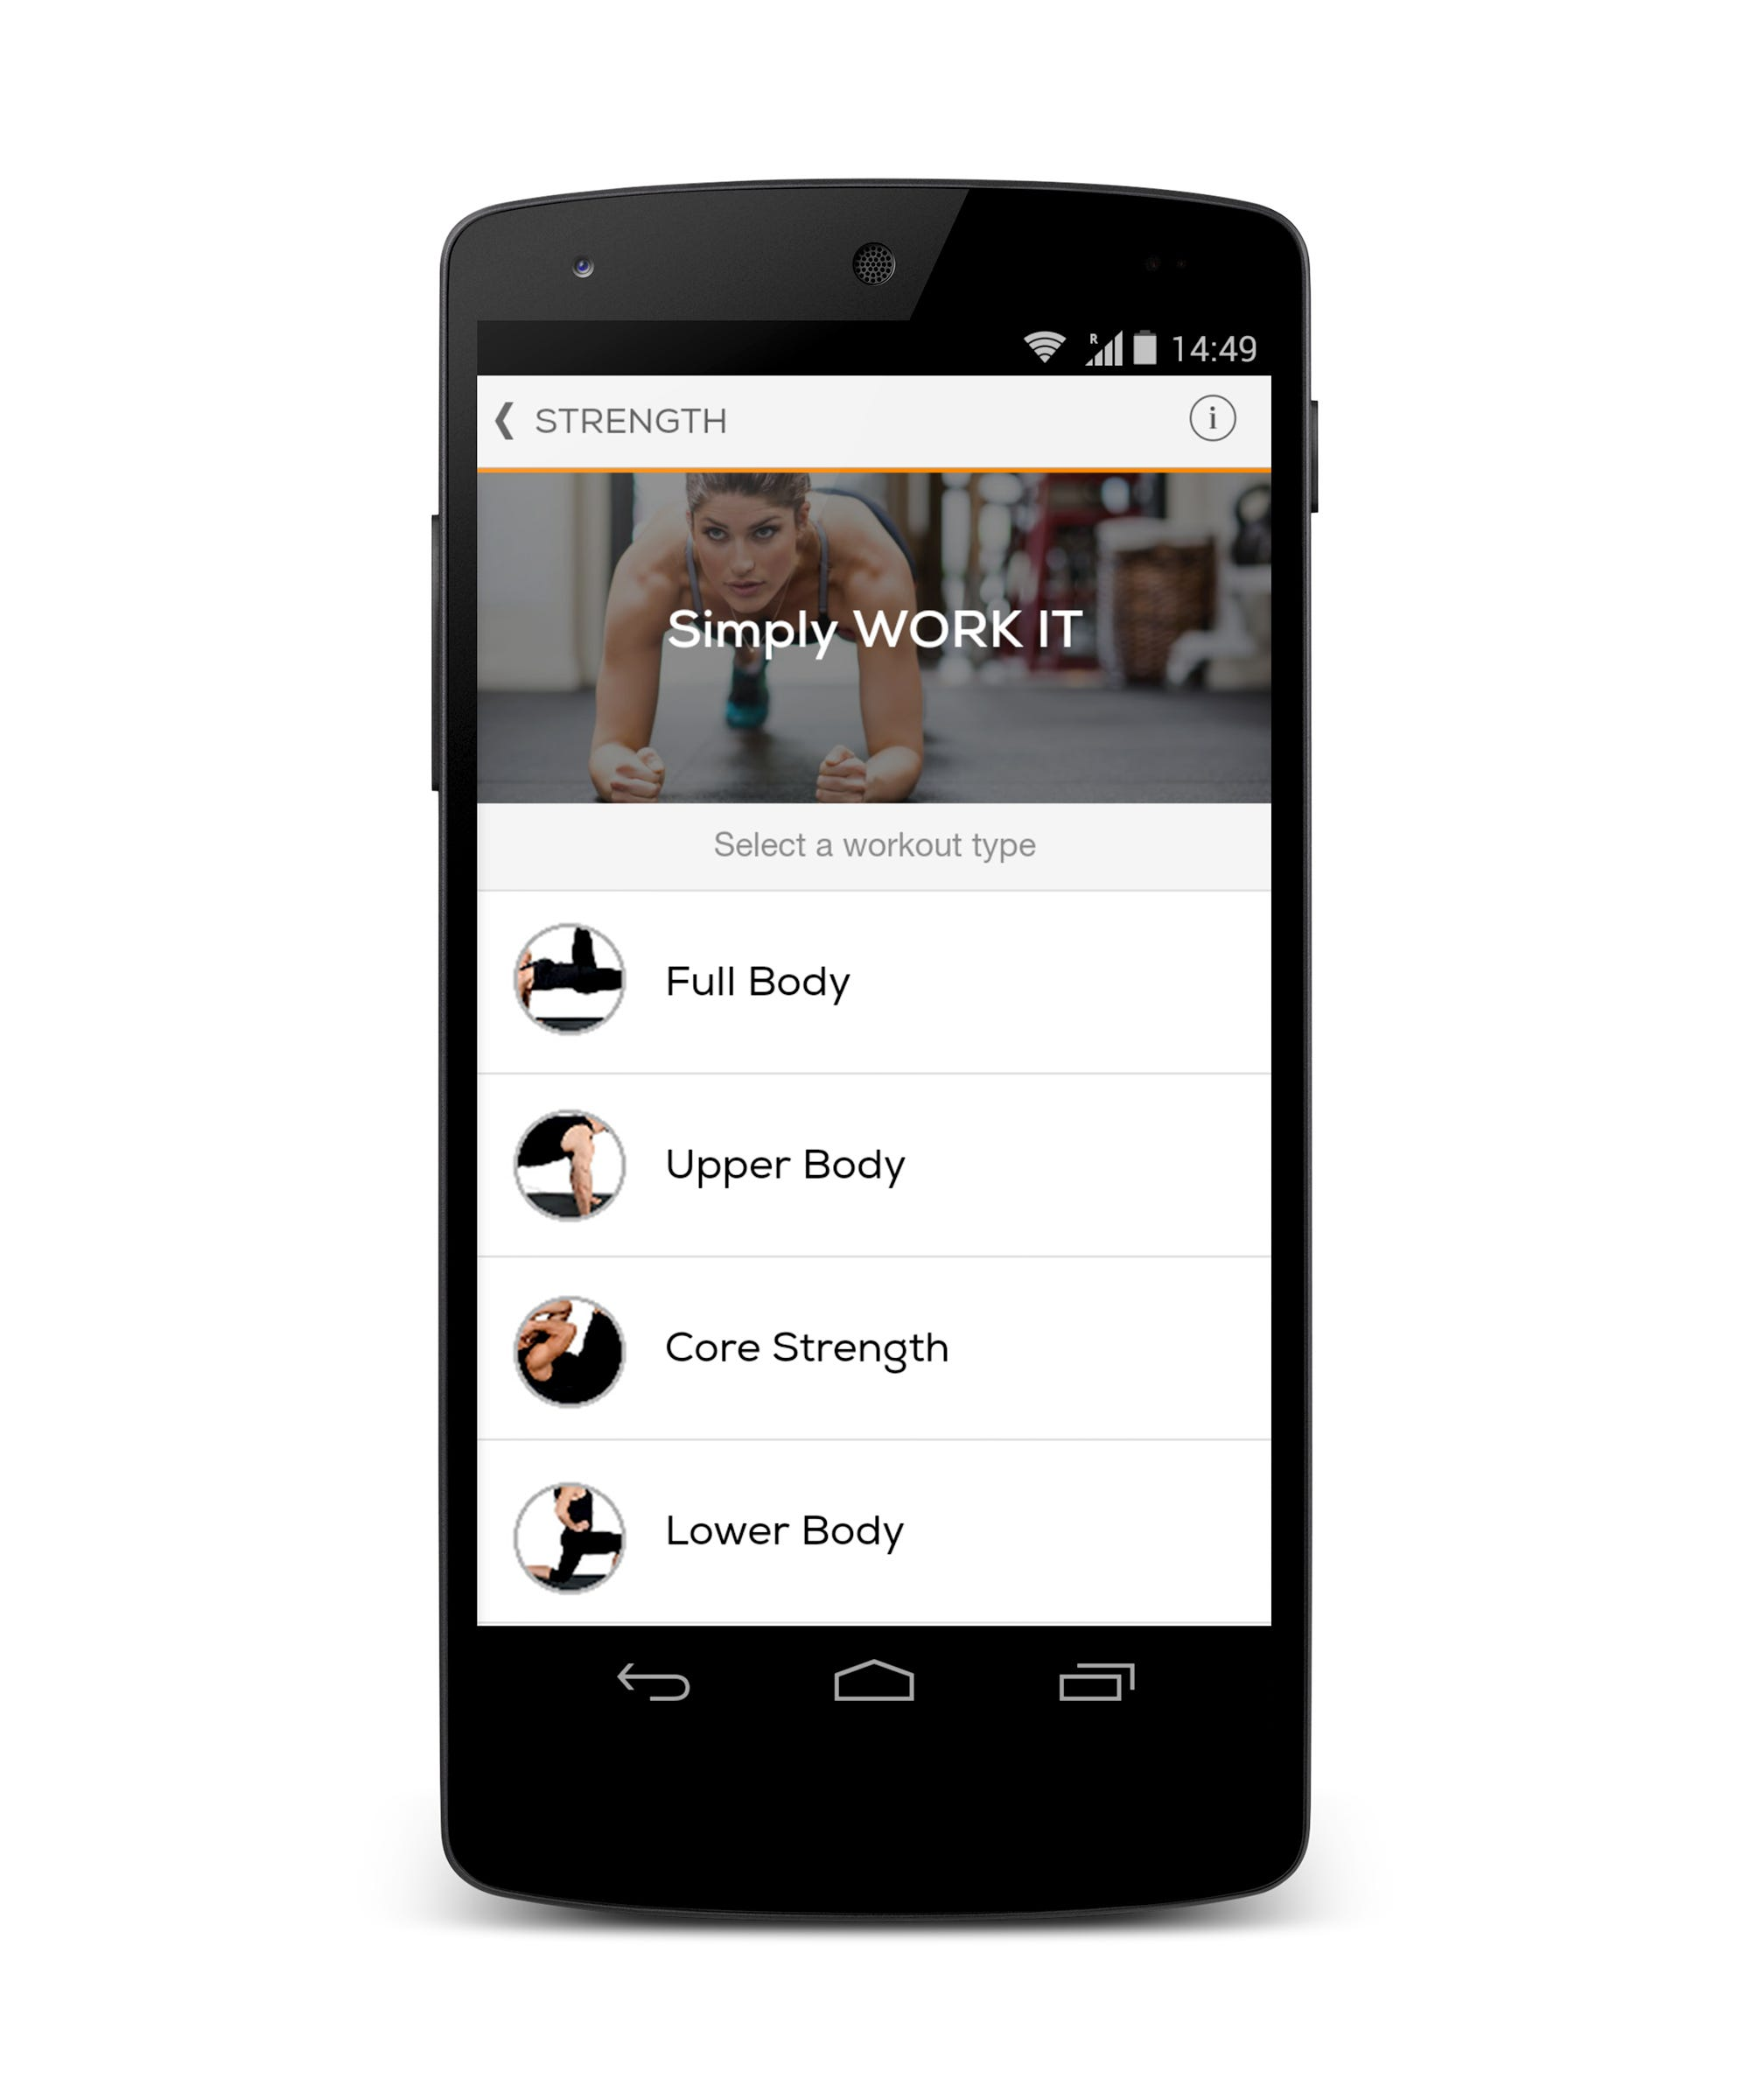 Best Workout Apps 2017 Free Fitness Exercise Routines January Indoor Full Body Circuit Timed